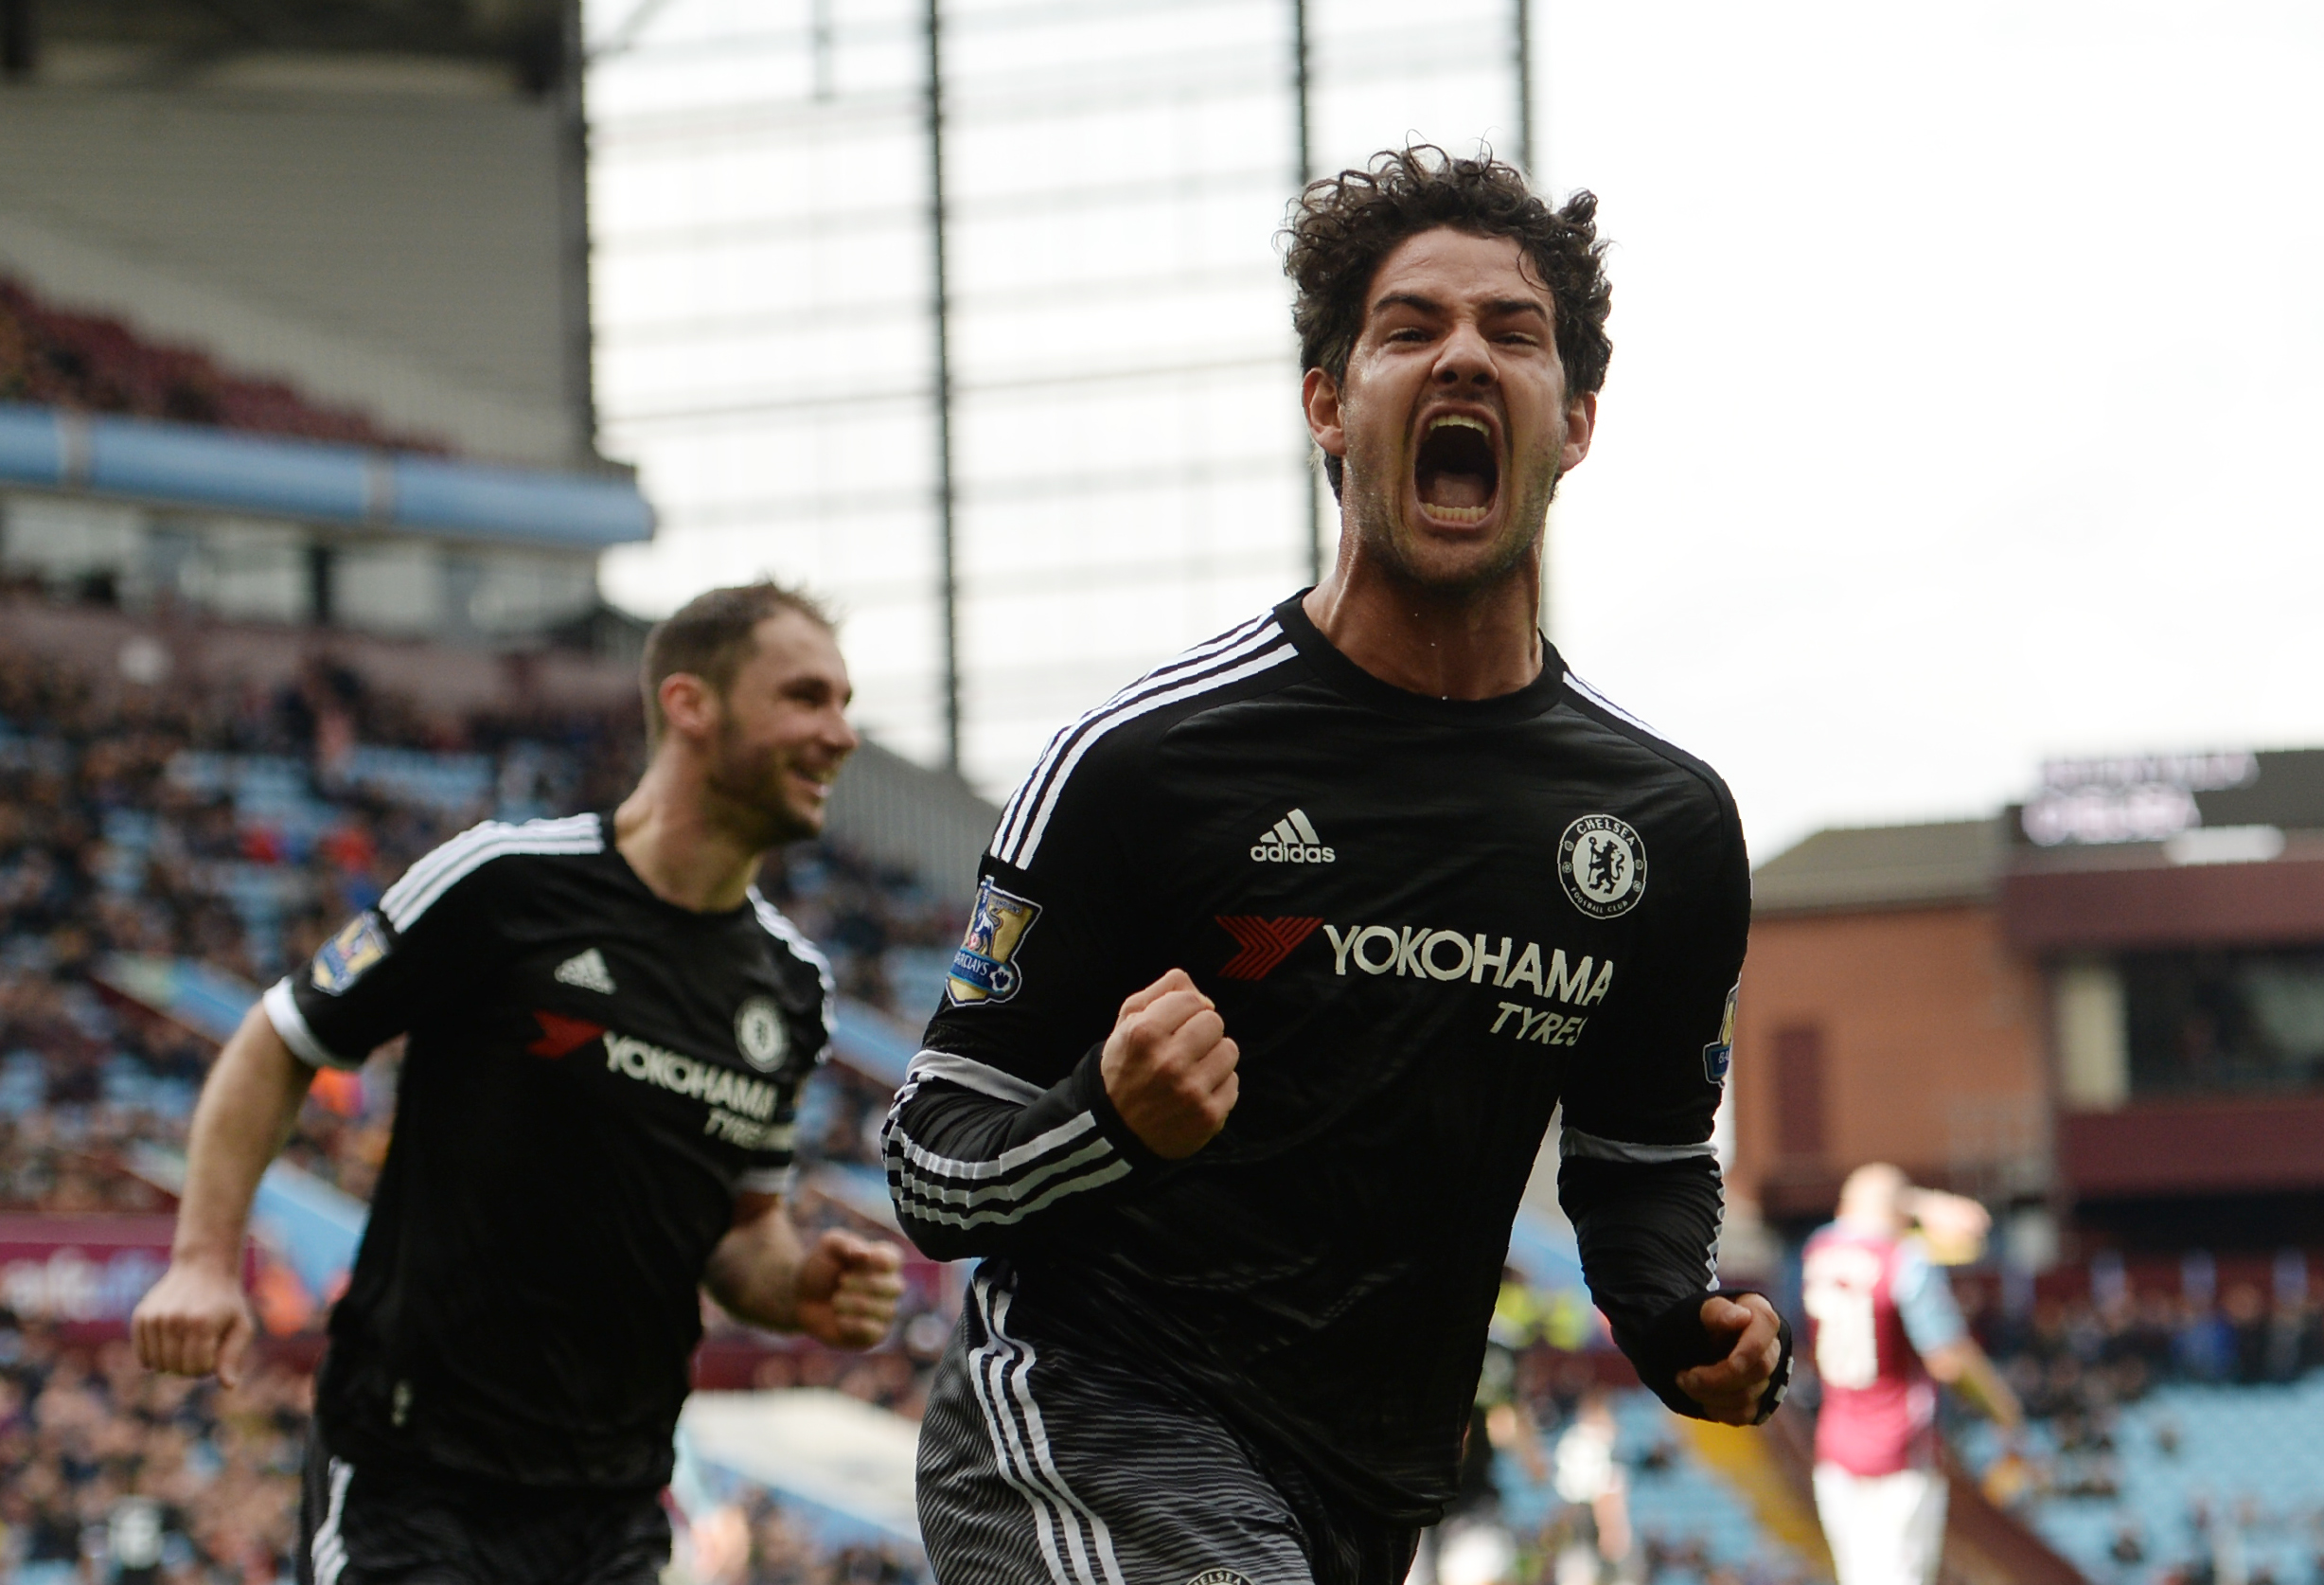 Alexandre Pato's agent: I've not heard from Chelsea or Antonio Conte about permanent transfer